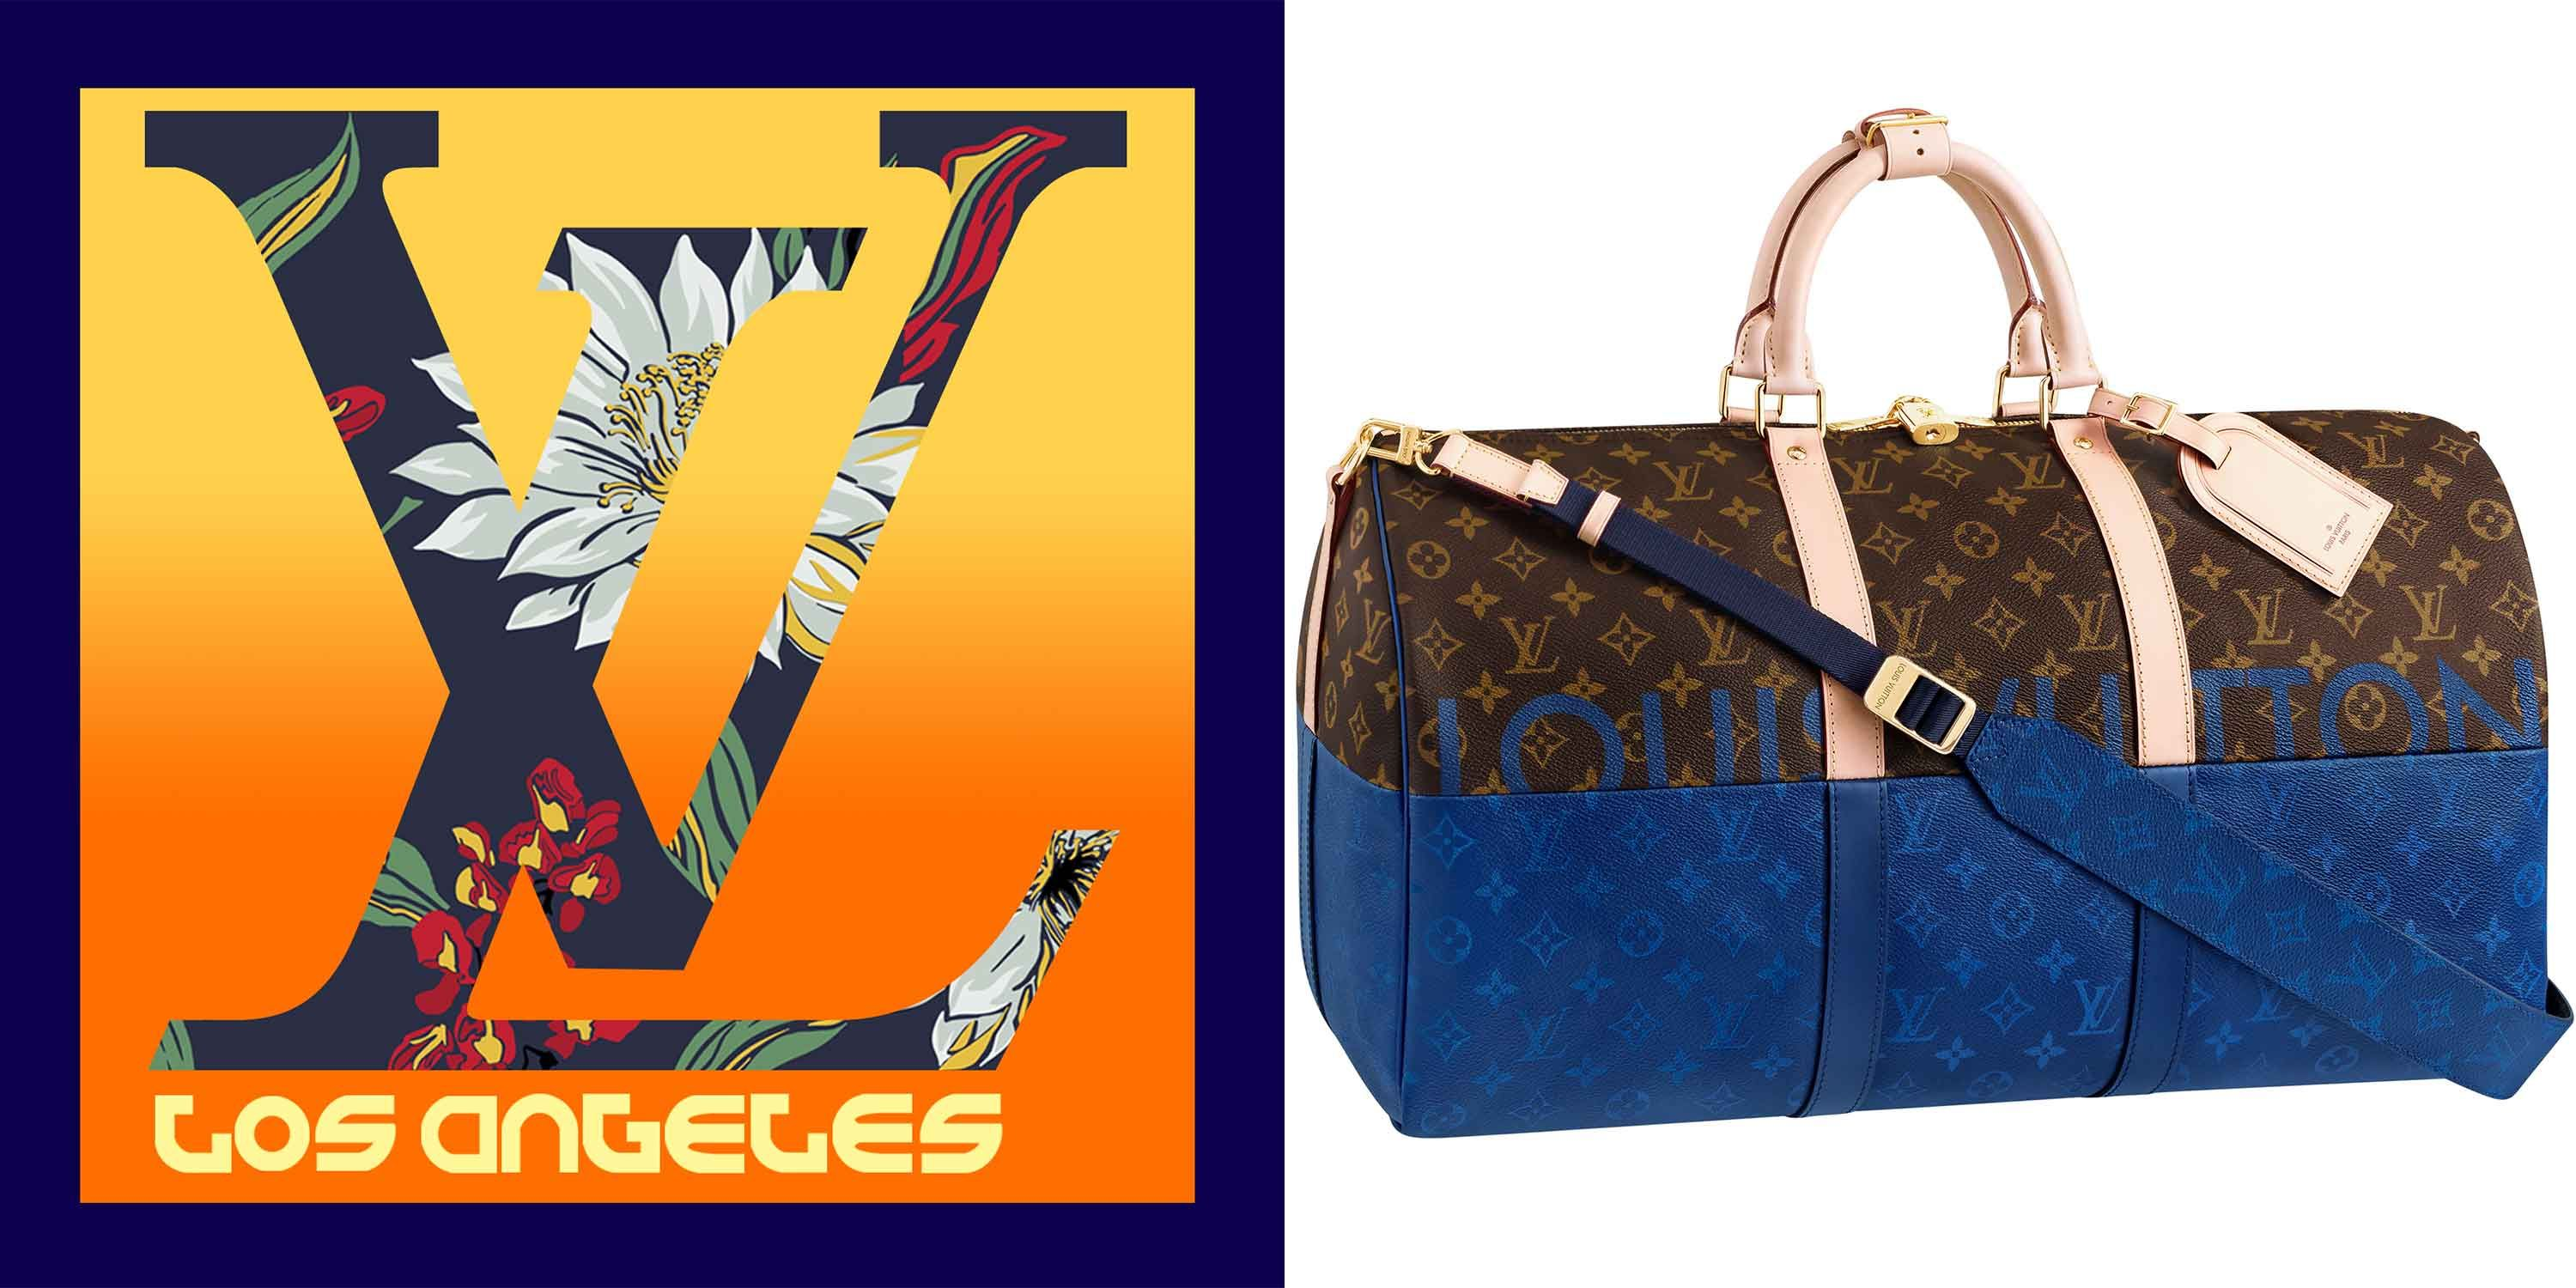 ad72f86483 Louis Vuitton Is Dropping New Limited-Edition Gear Across the US